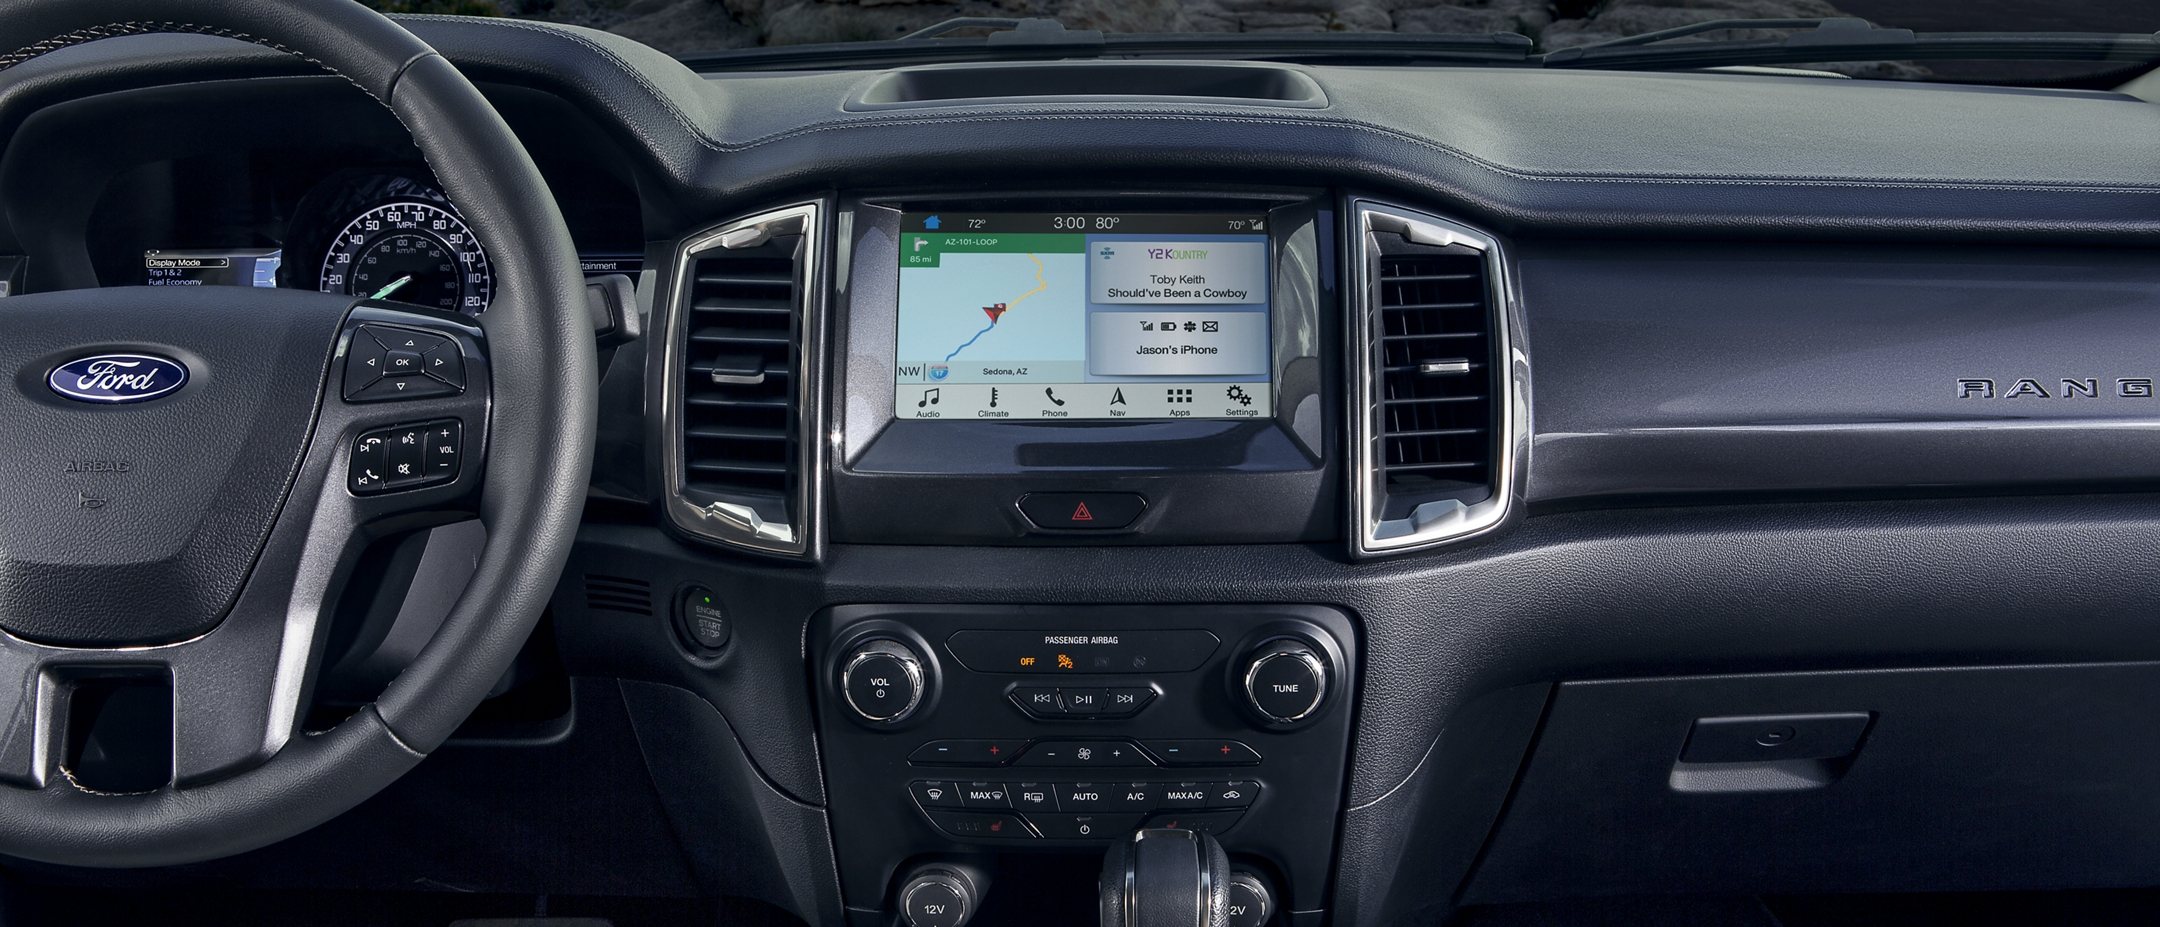 SYNC 3 on eight inch center dash screen of 2019 Ford Ranger